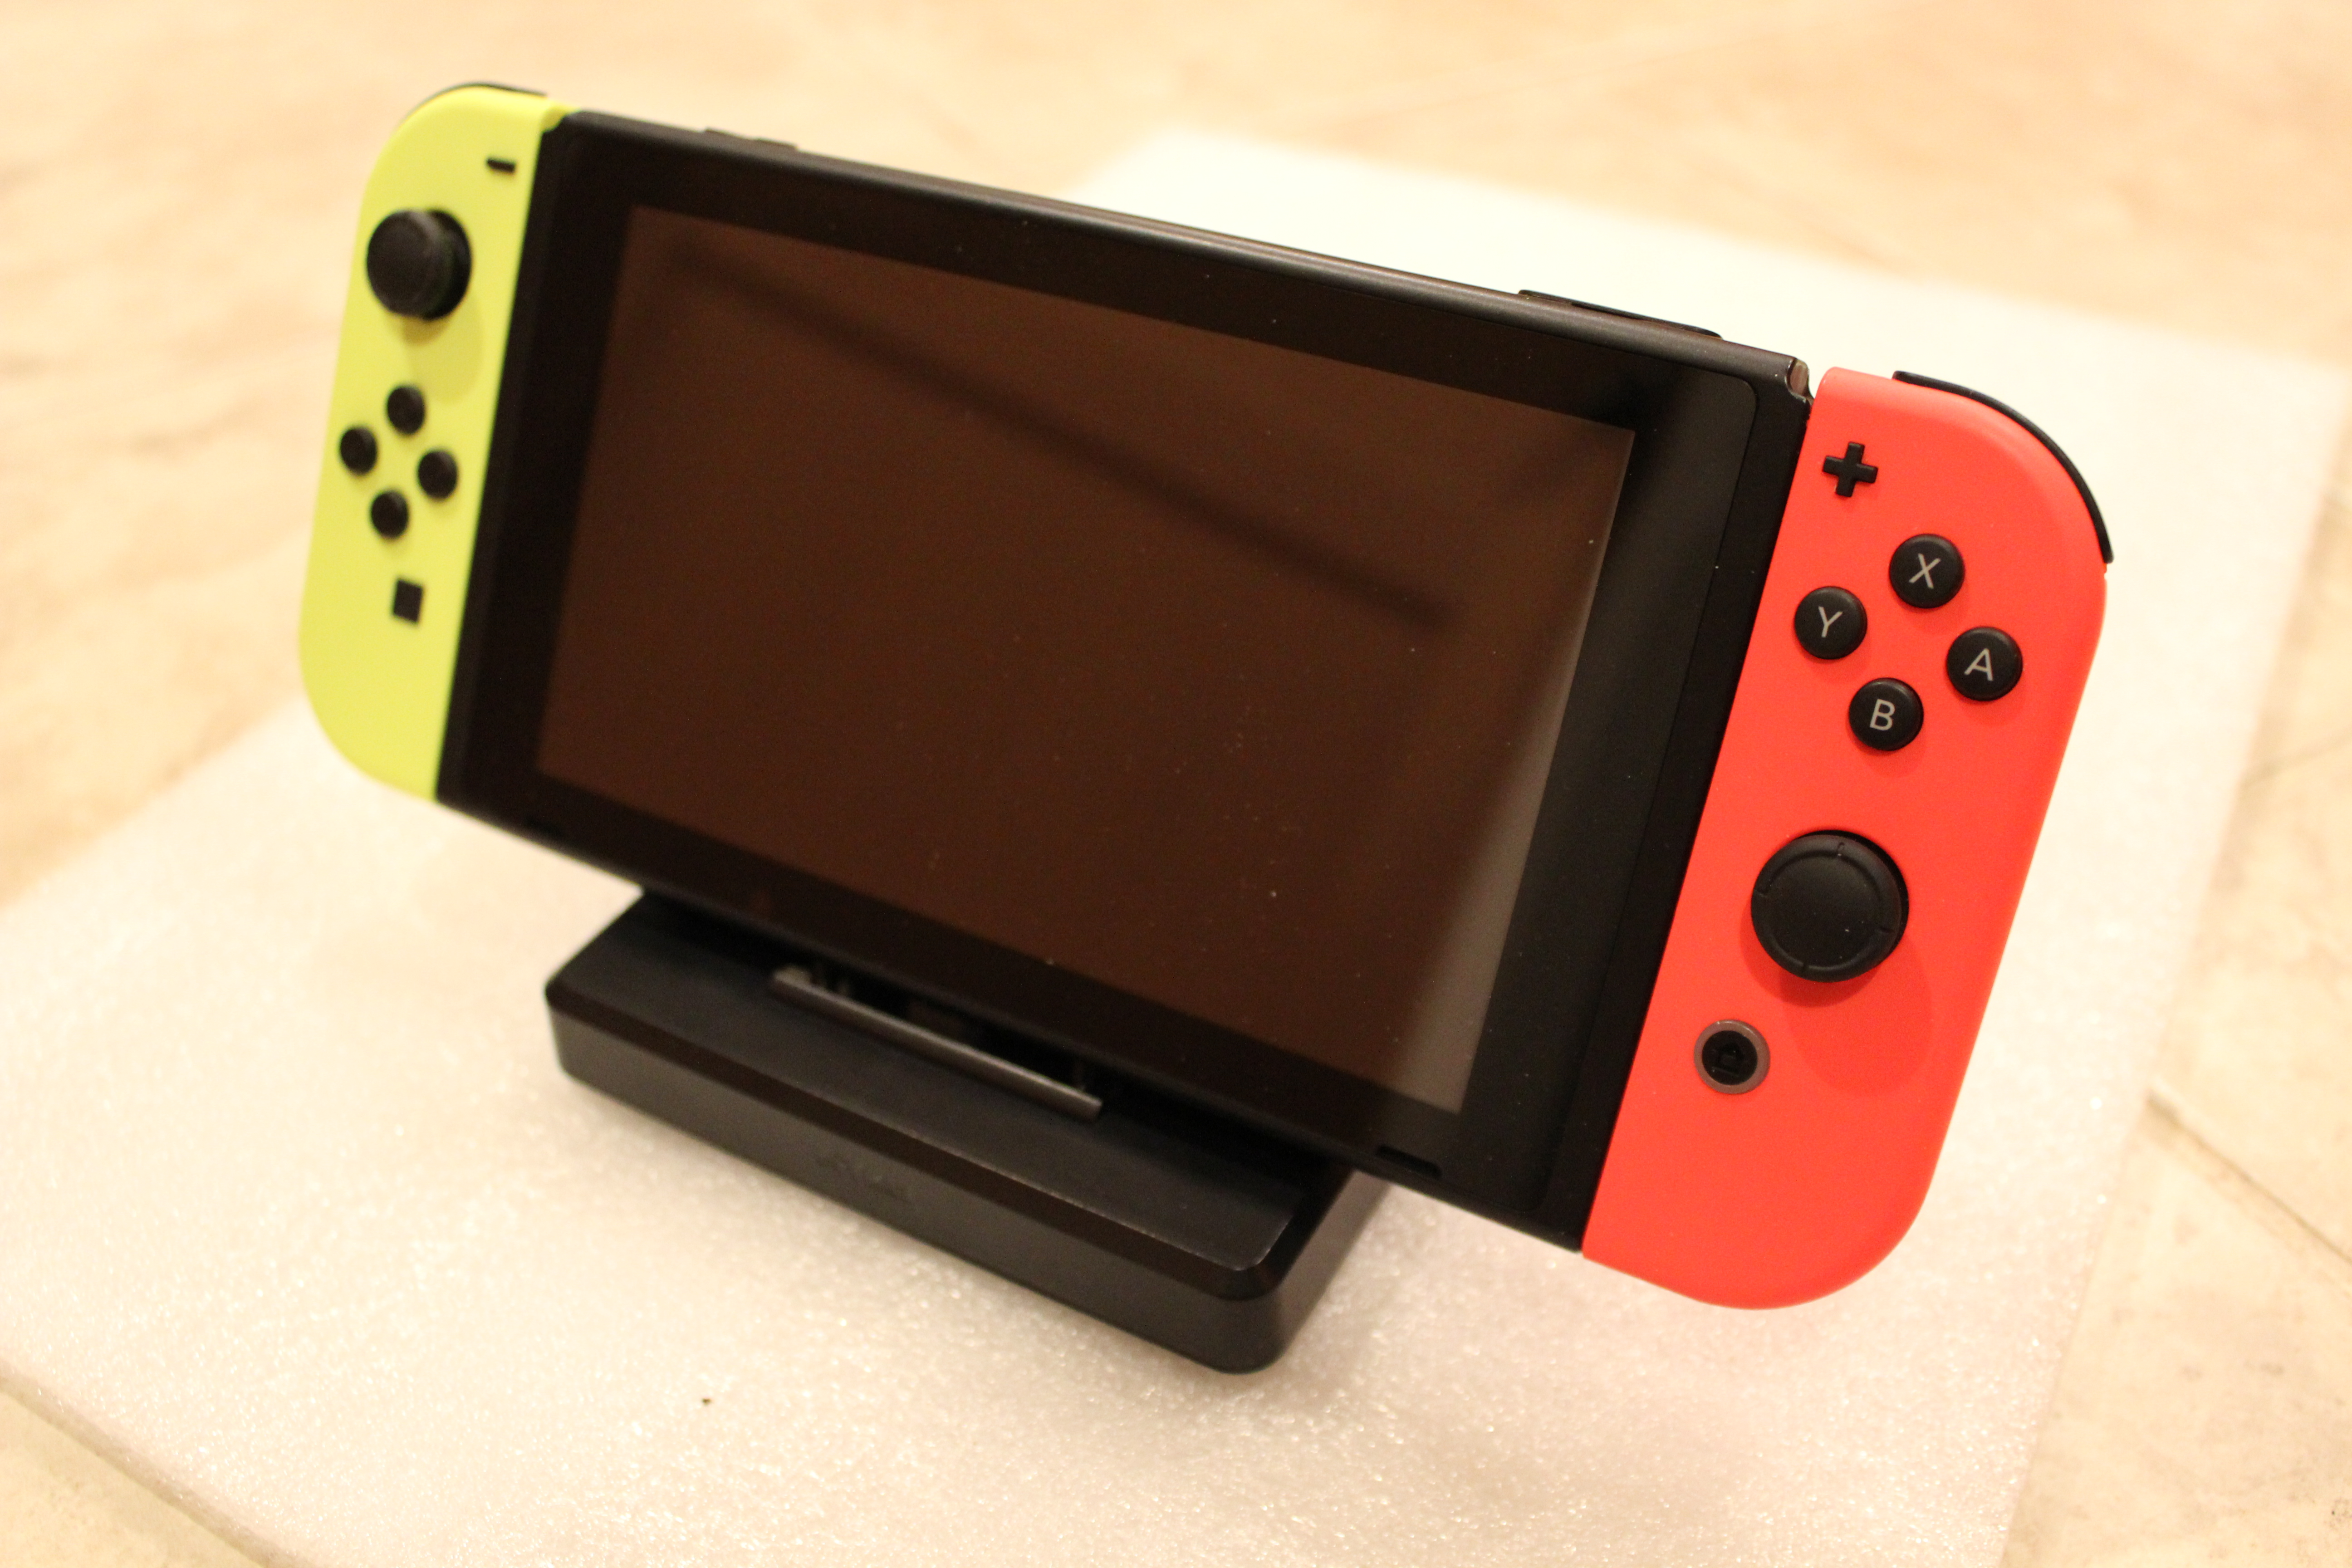 nintendo switch s first portable dock offers freedom but with new